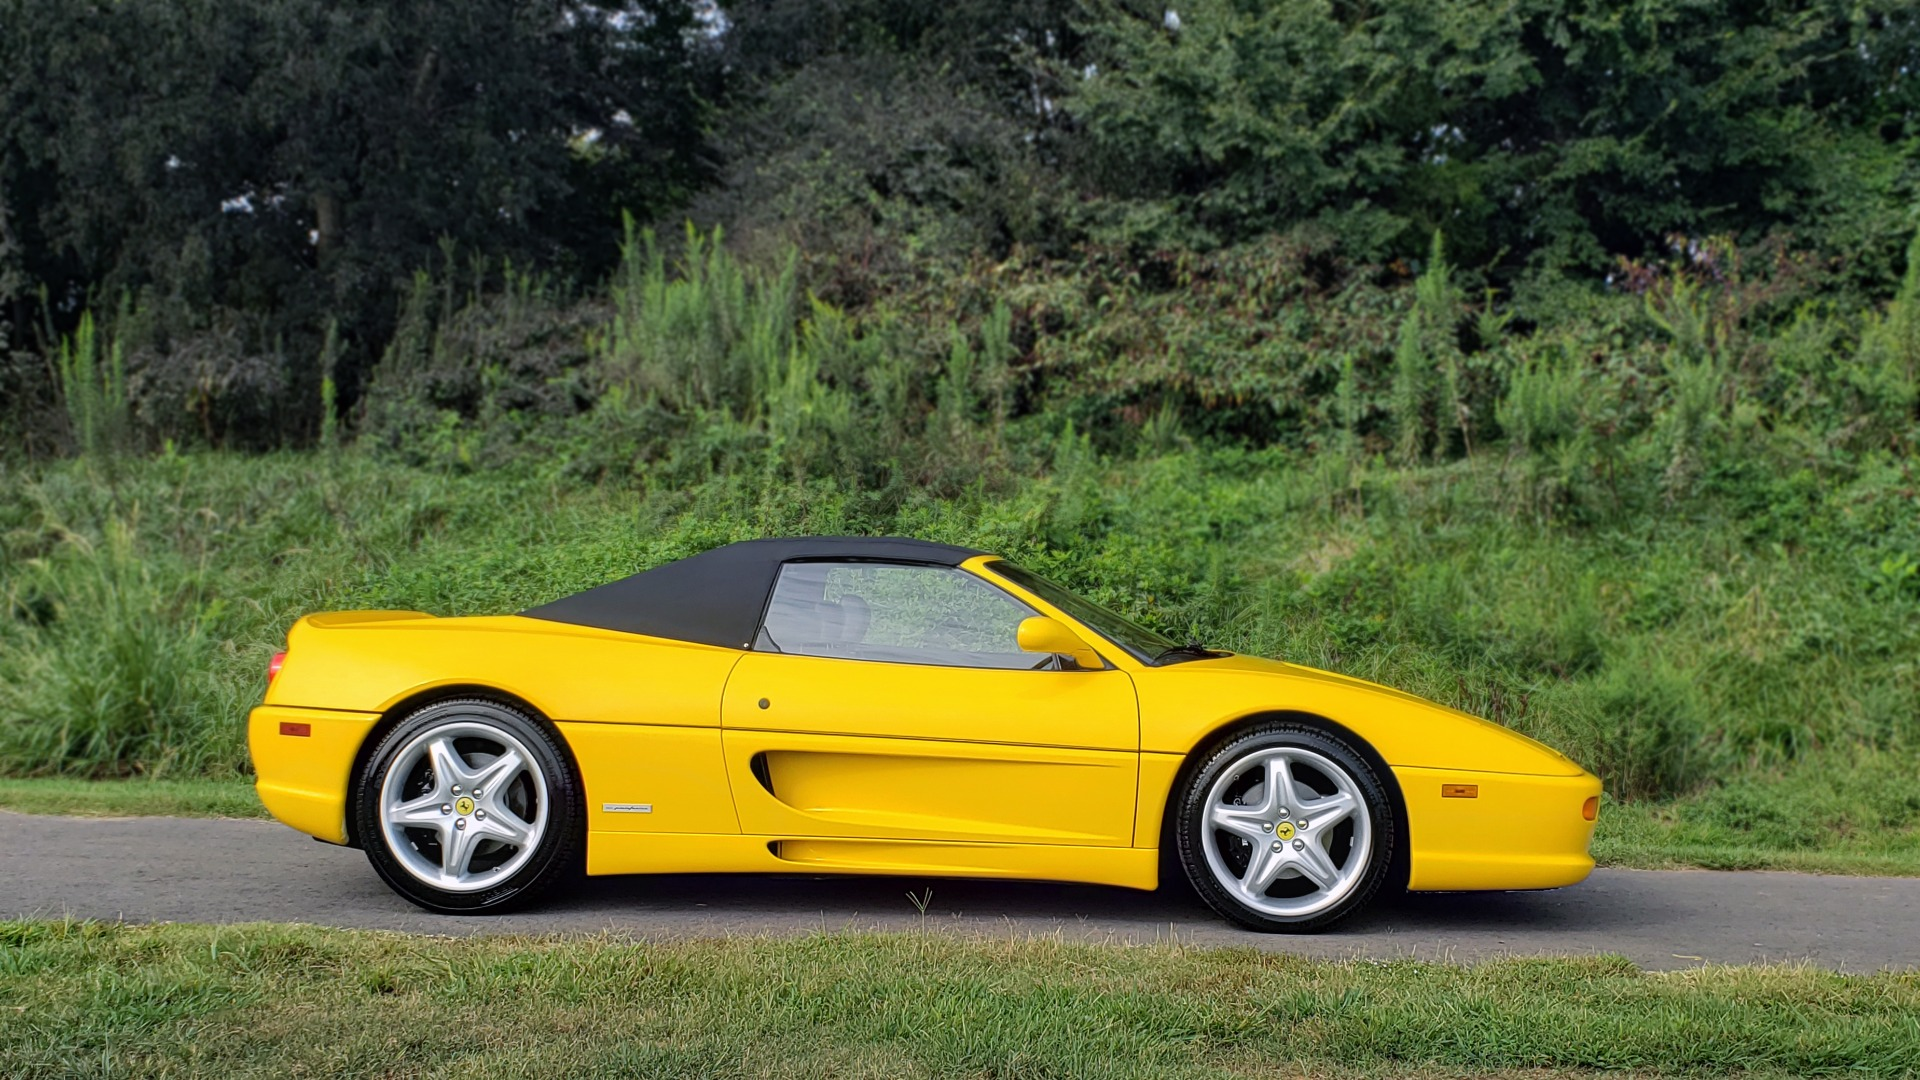 Used 1996 Ferrari F355 SPIDER / GATED 6-SPEED MANUAL / LOW MILES / NEW TIRES for sale $95,999 at Formula Imports in Charlotte NC 28227 3